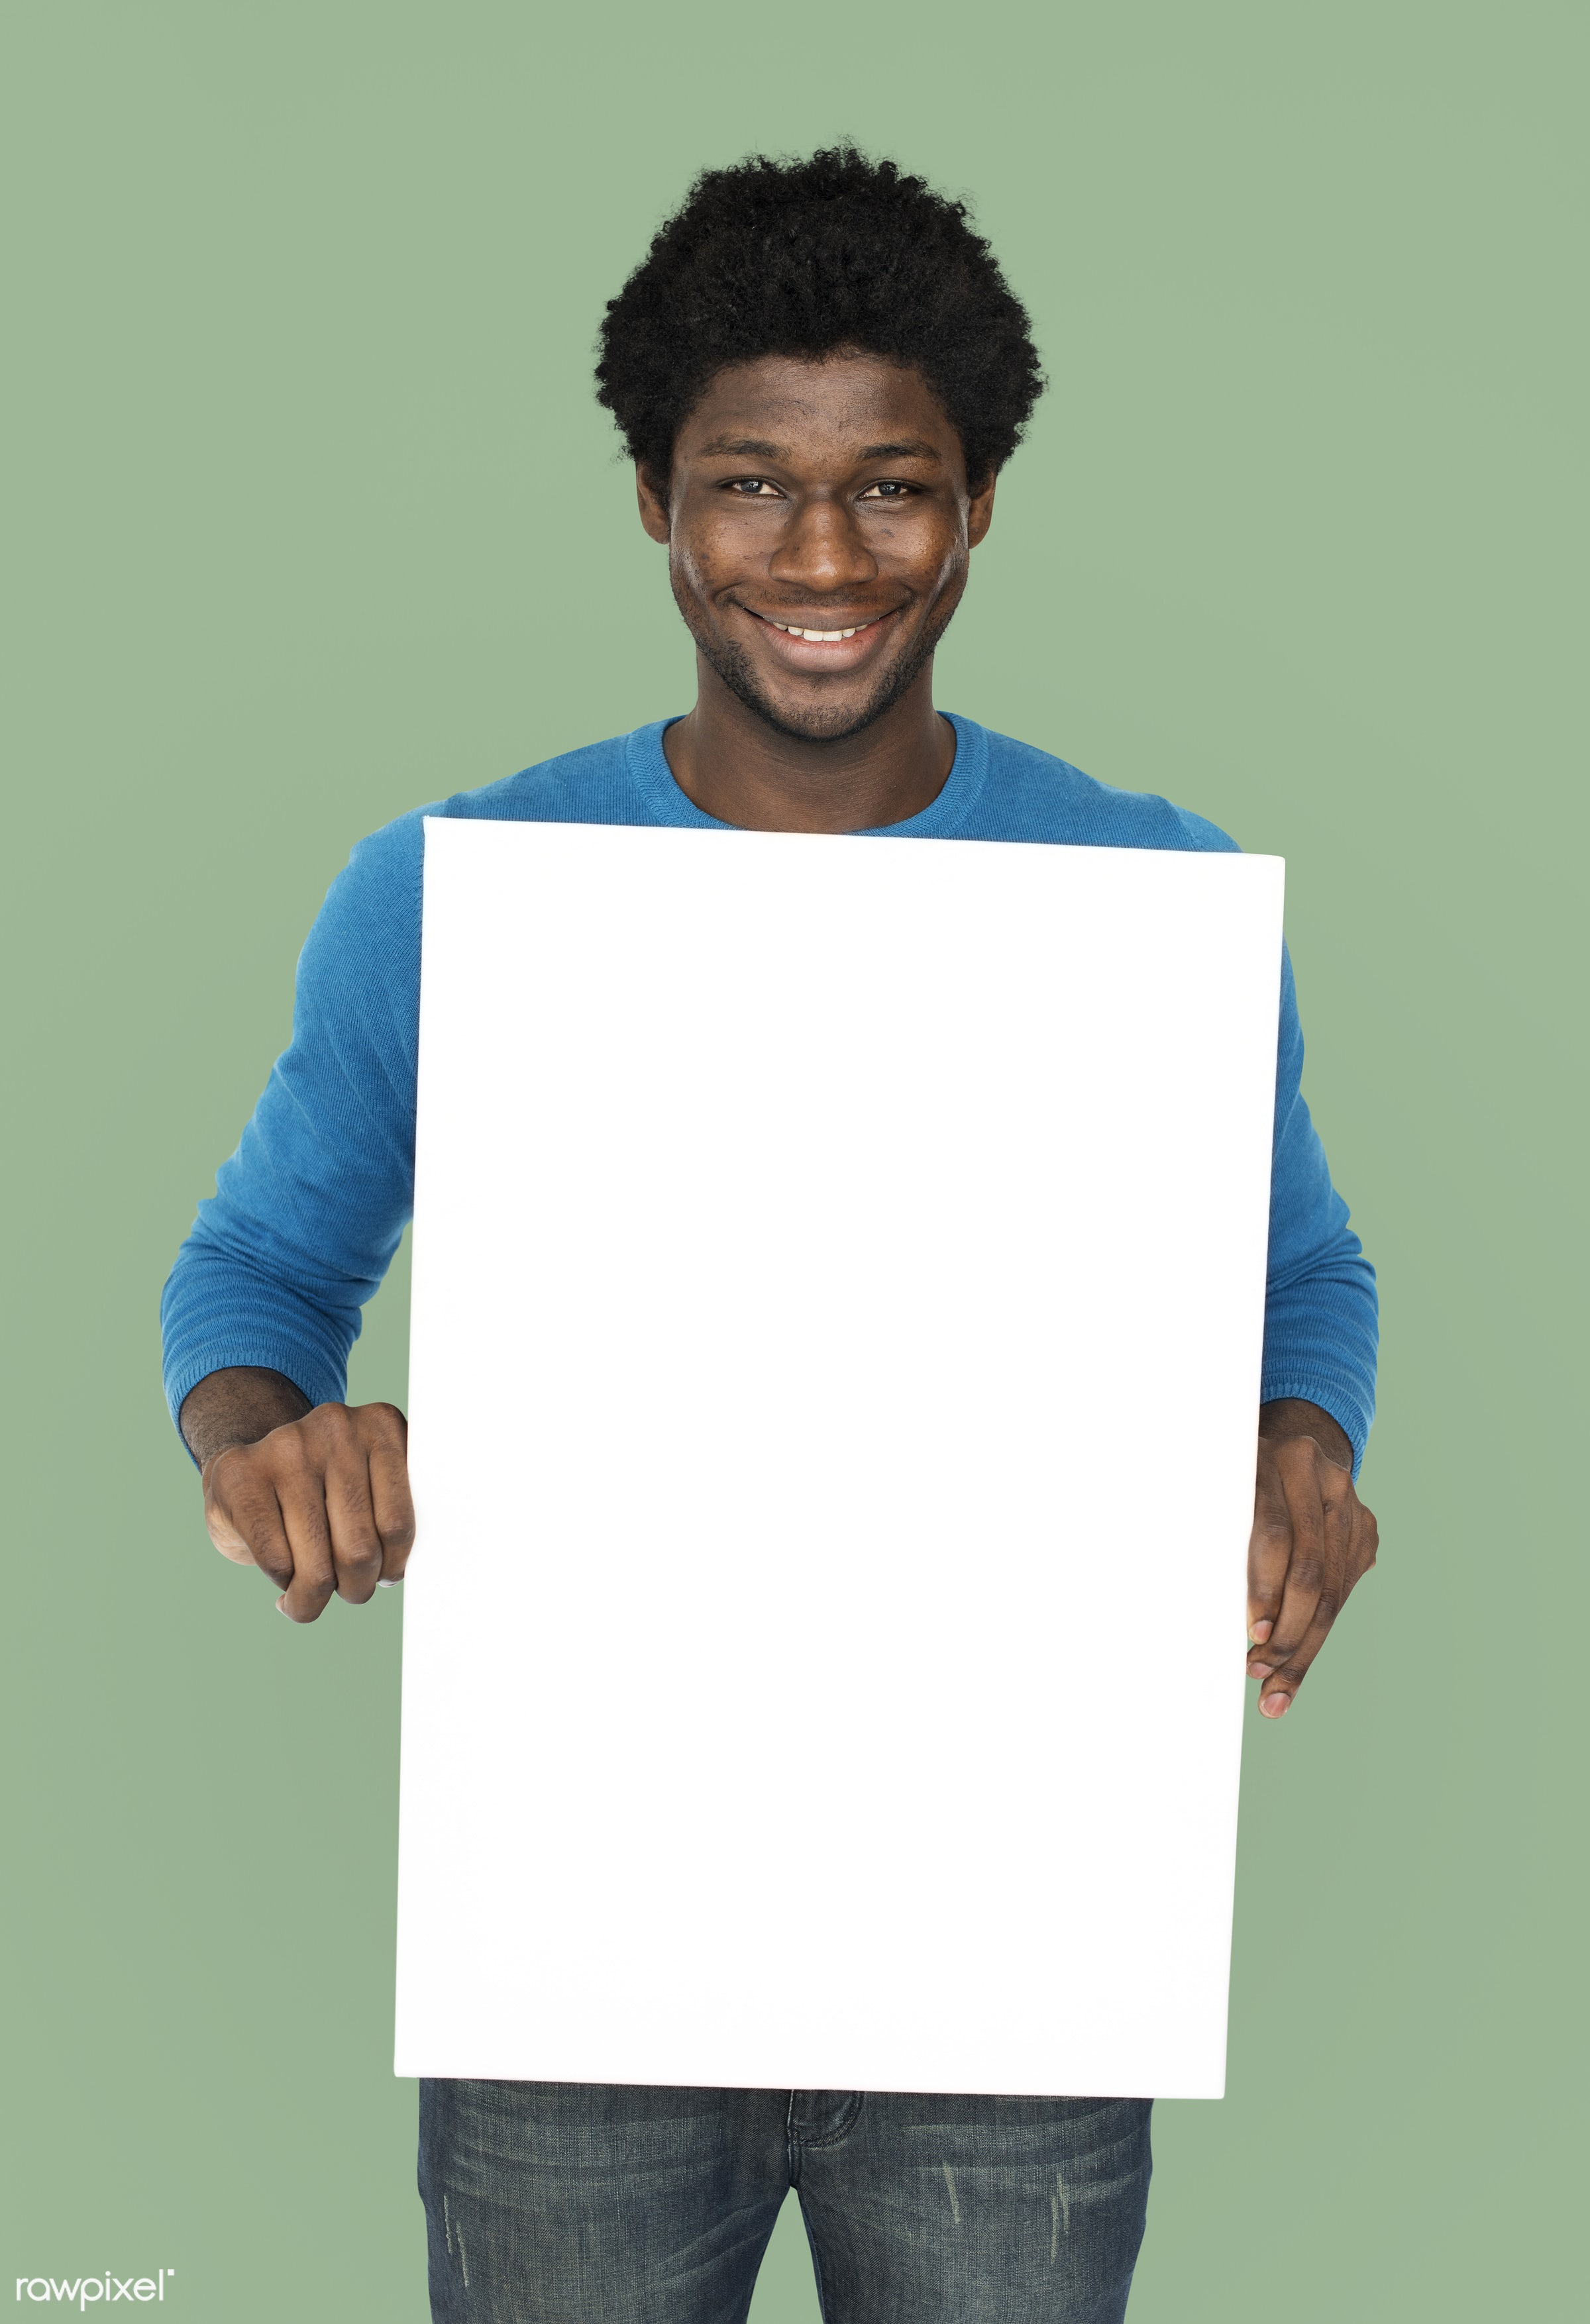 advertising, african american, african descent, background, banner, black, blank, board, casual, cheerful, confident, copy...